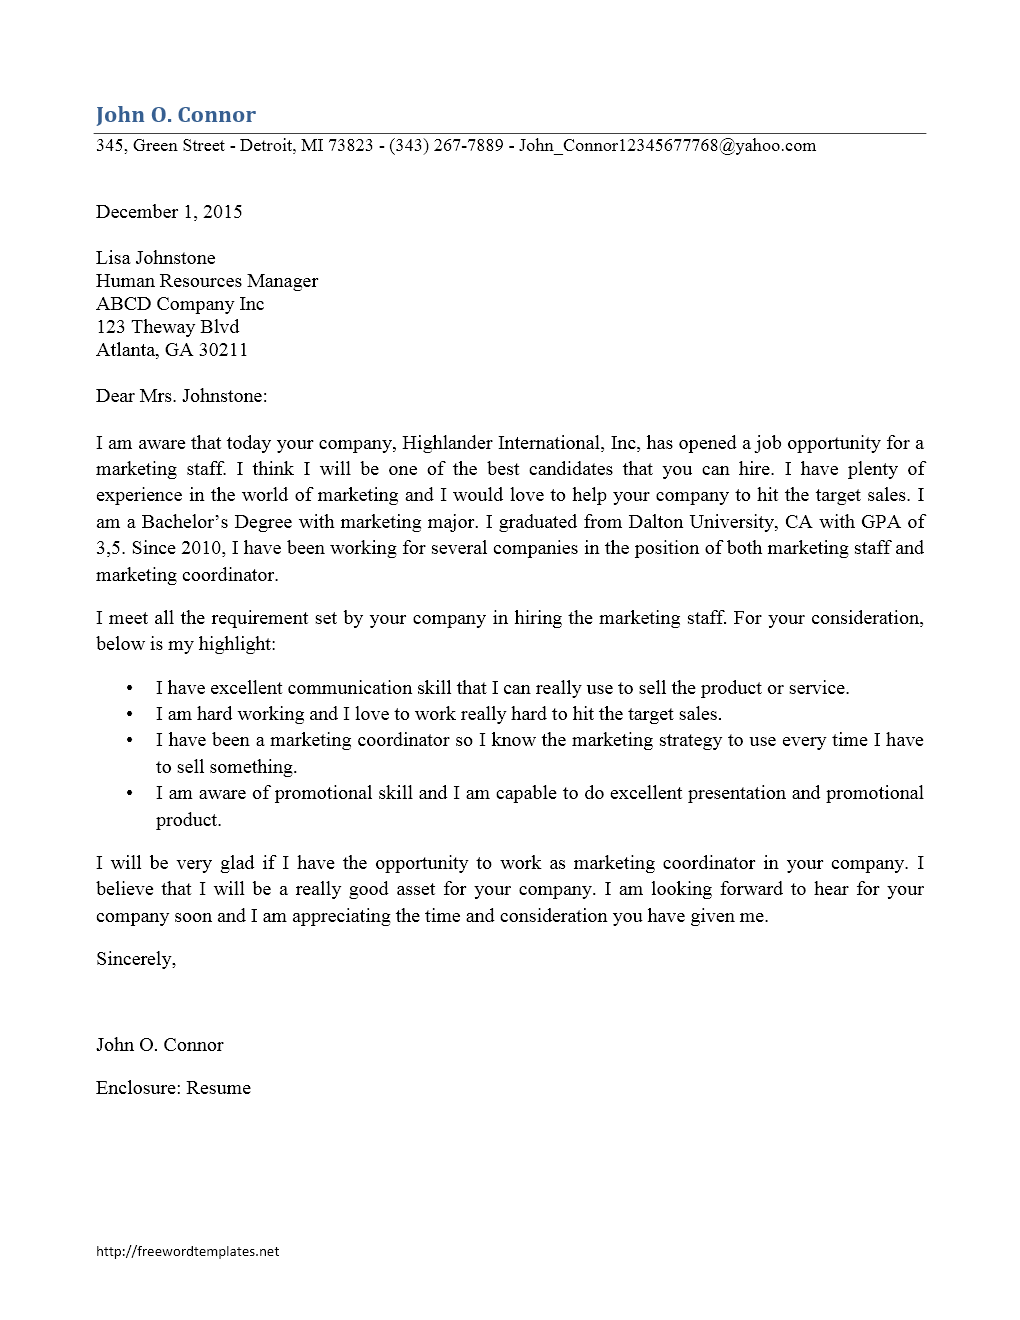 Cover Letter Template - Marketing Staff